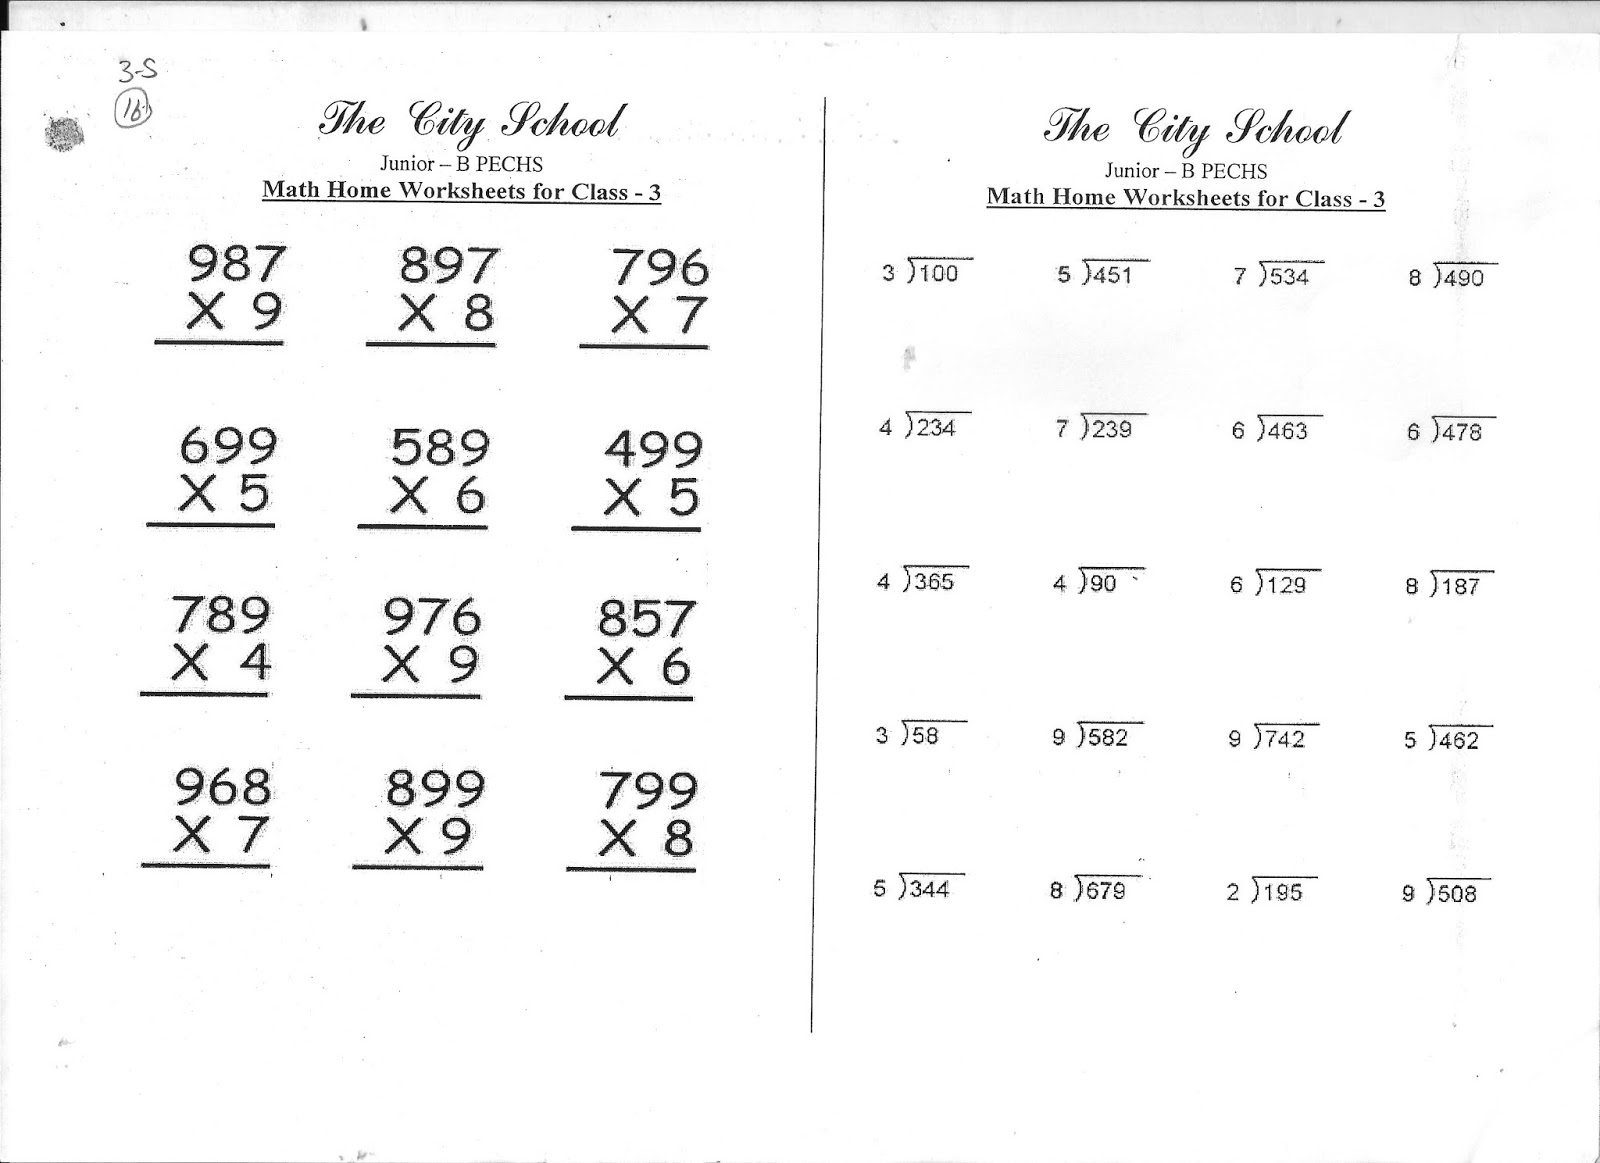 math worksheet : the city school worksheet for class  3 english maths science  : Maths And English Worksheets